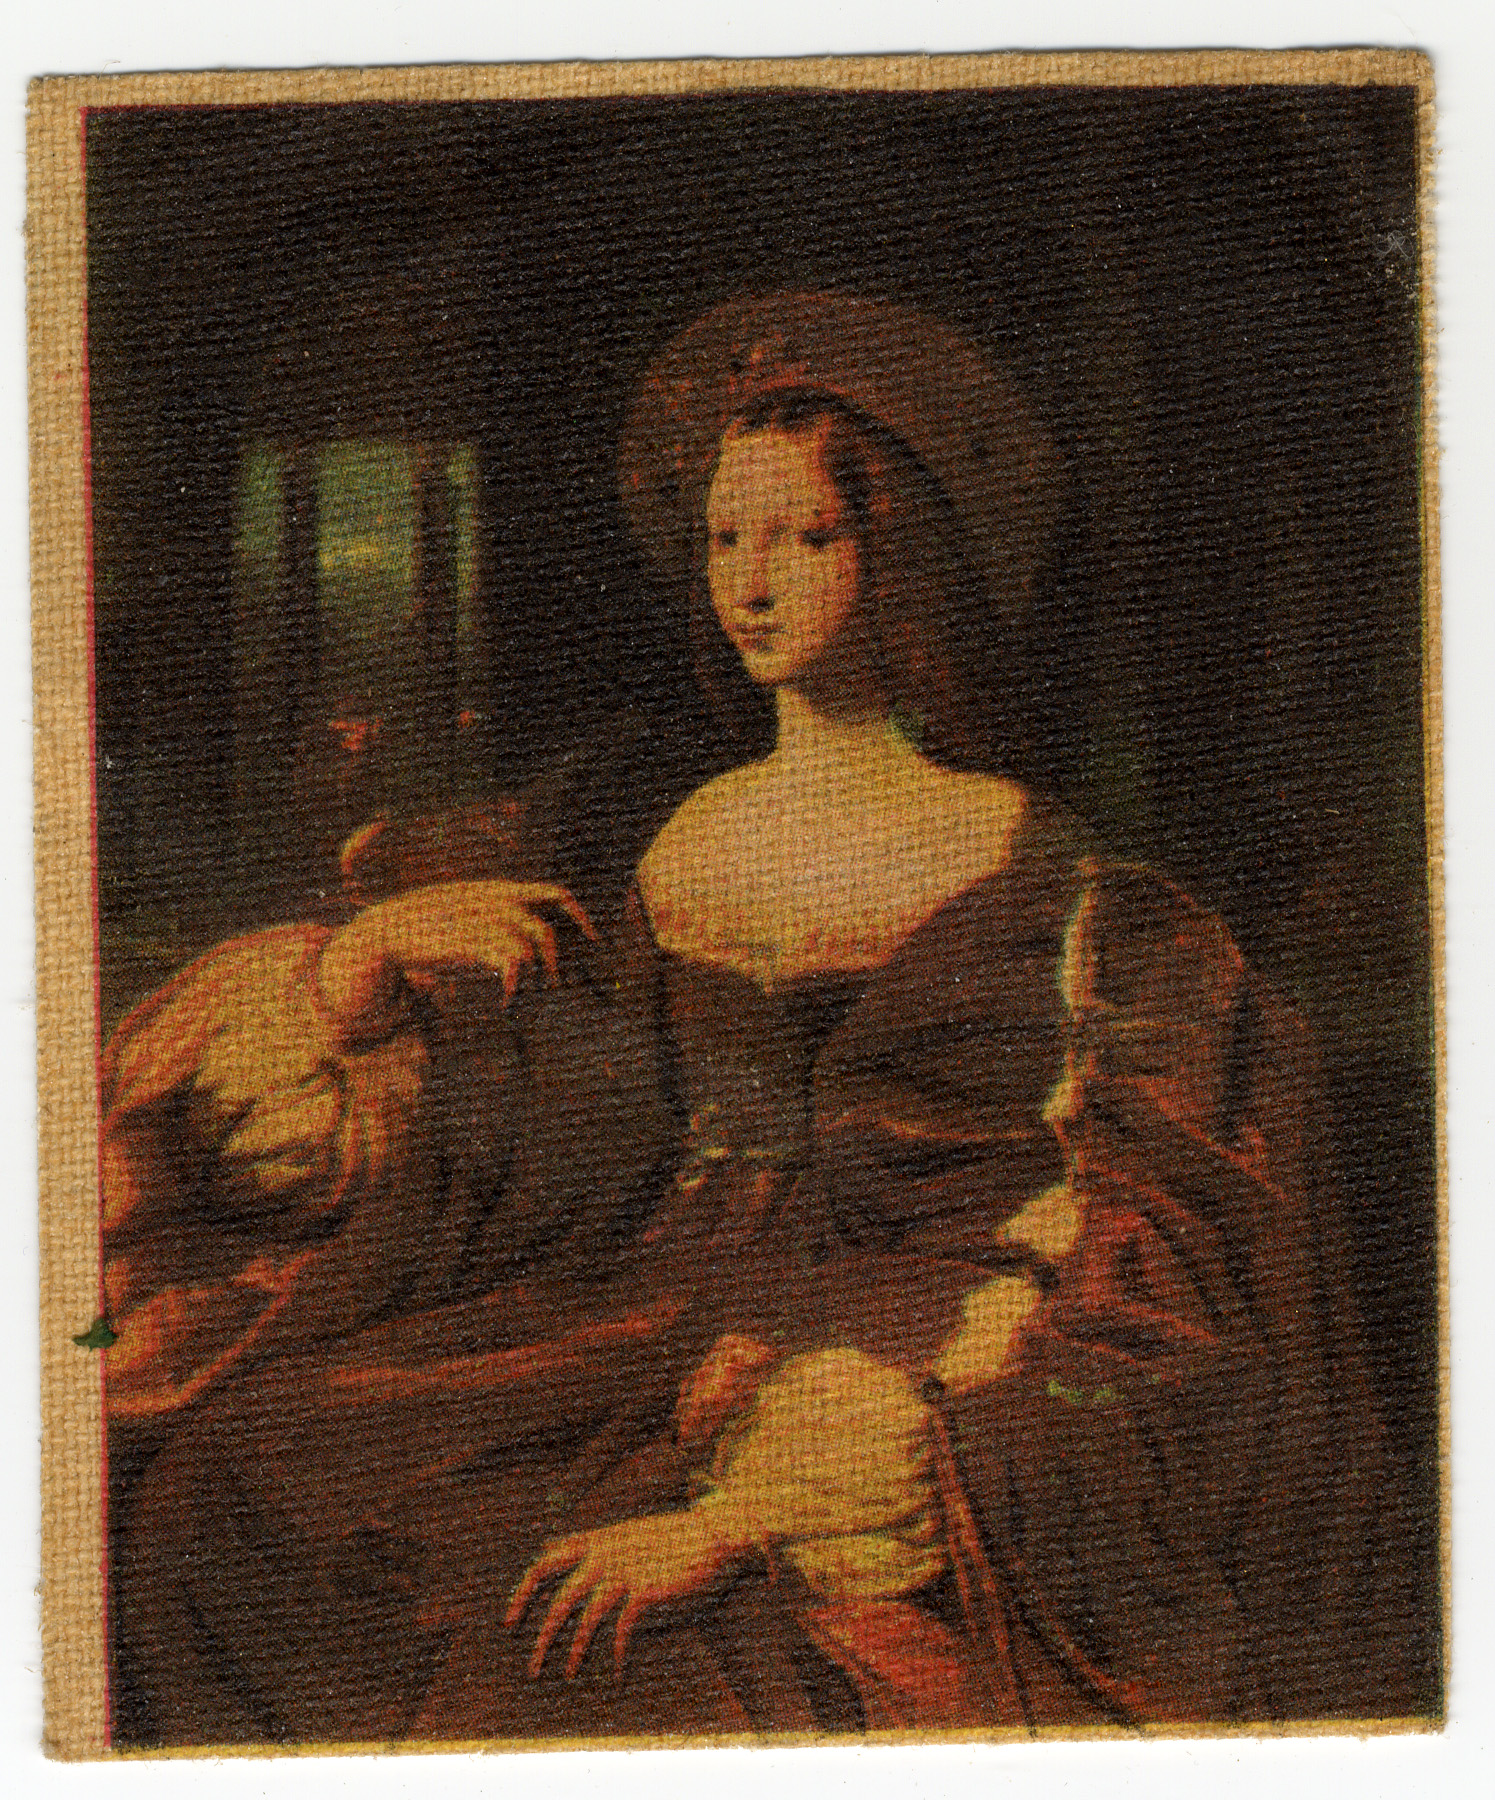 Cigarette Card: f Aragon by Raphael. Badminton: Spinet series 2, no. 38